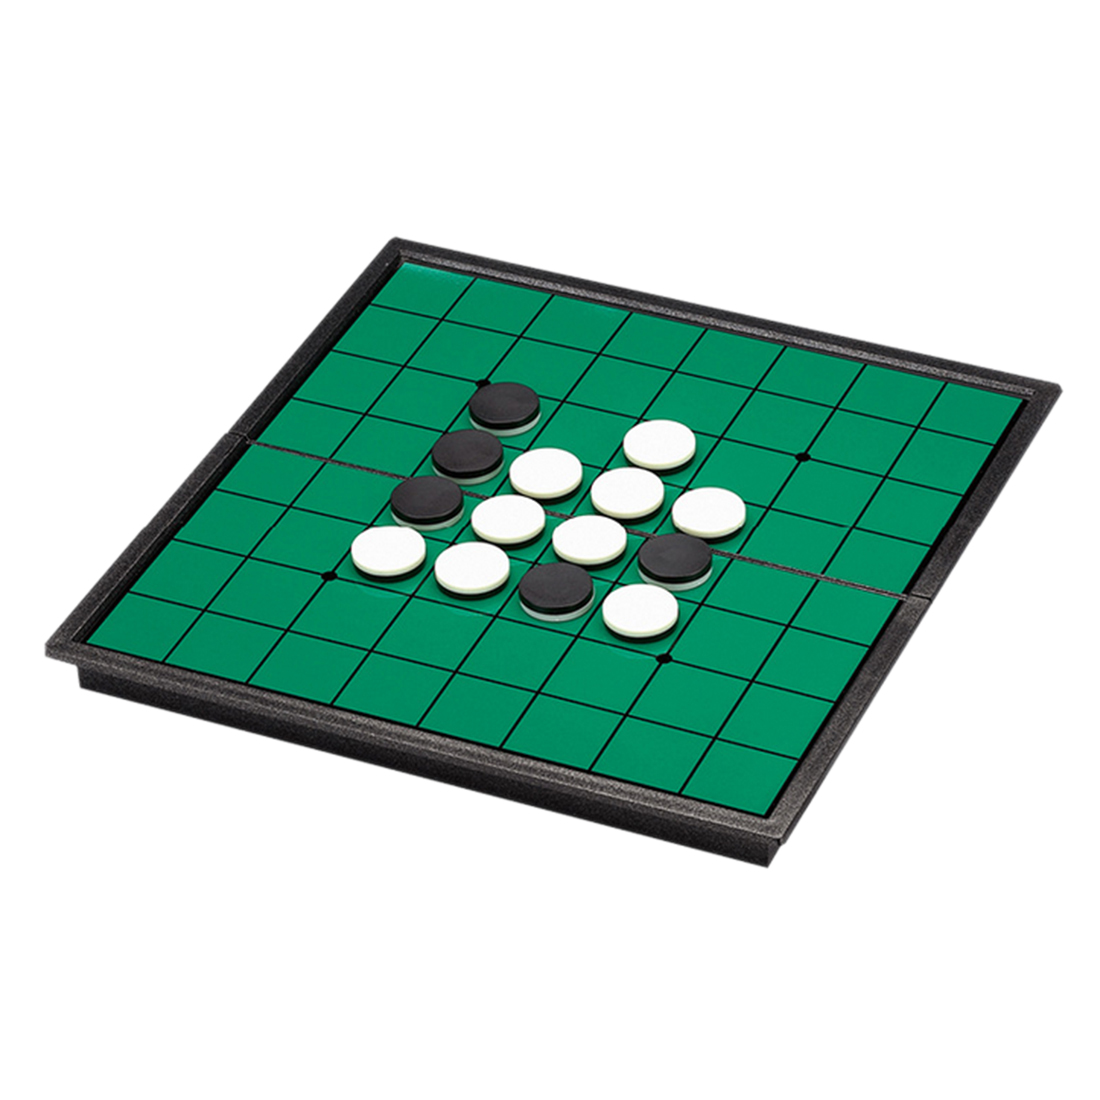 Magnetic Portable flip chess and Folding Reversi Othello Board Chess Standard Educational parent-children Board Game ToyMagnetic Portable flip chess and Folding Reversi Othello Board Chess Standard Educational parent-children Board Game Toy